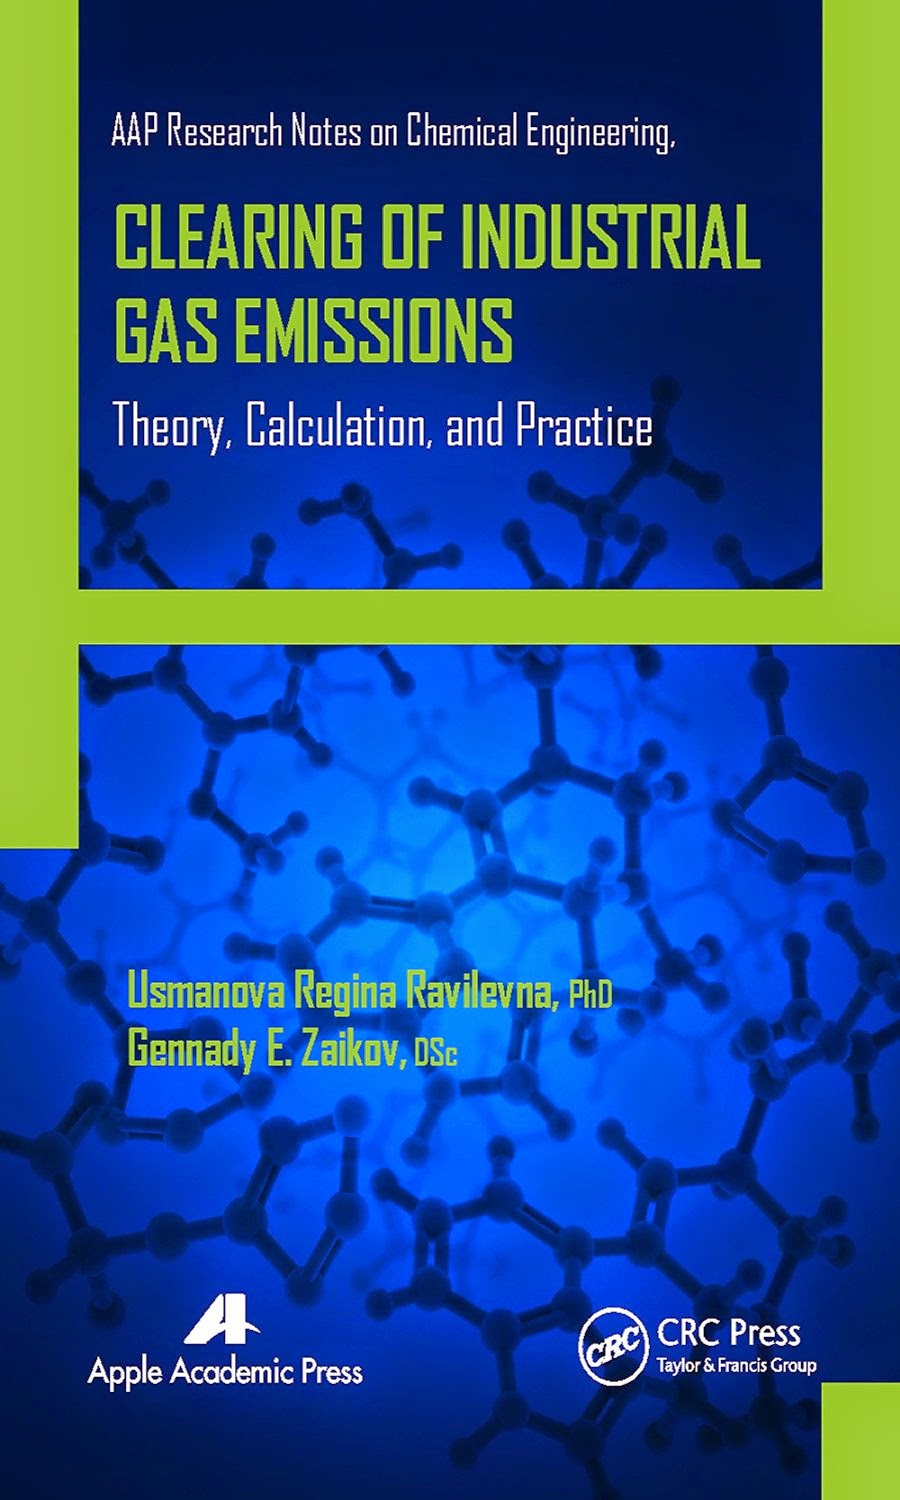 http://www.kingcheapebooks.com/2015/02/clearing-of-industrial-gas-emissions.html